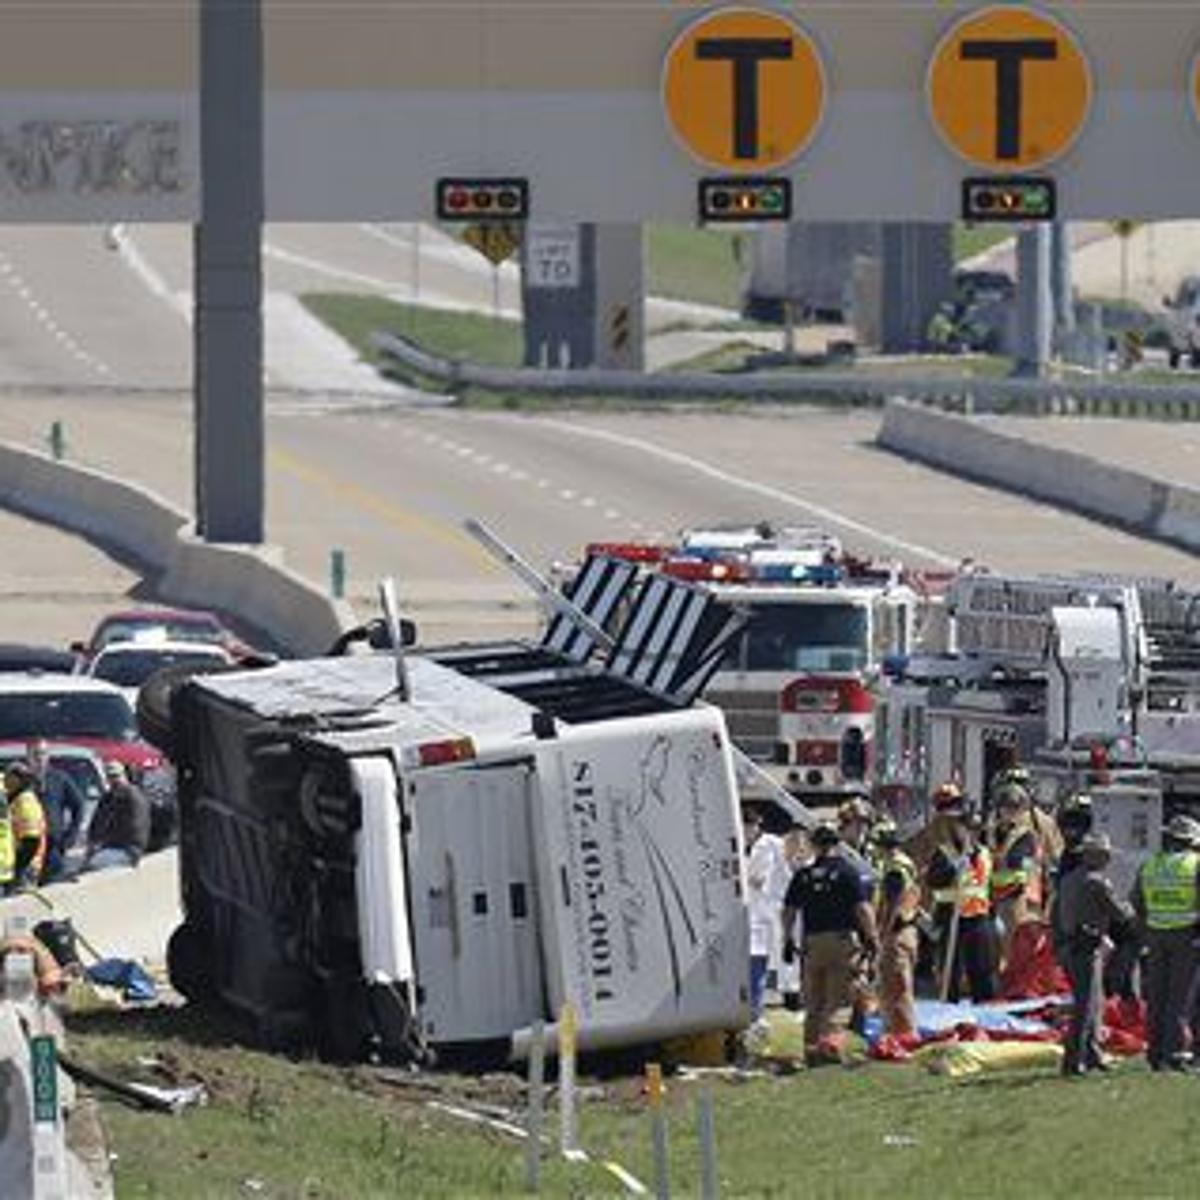 At least 2 dead as bus overturns near Dallas | Colorado Springs News